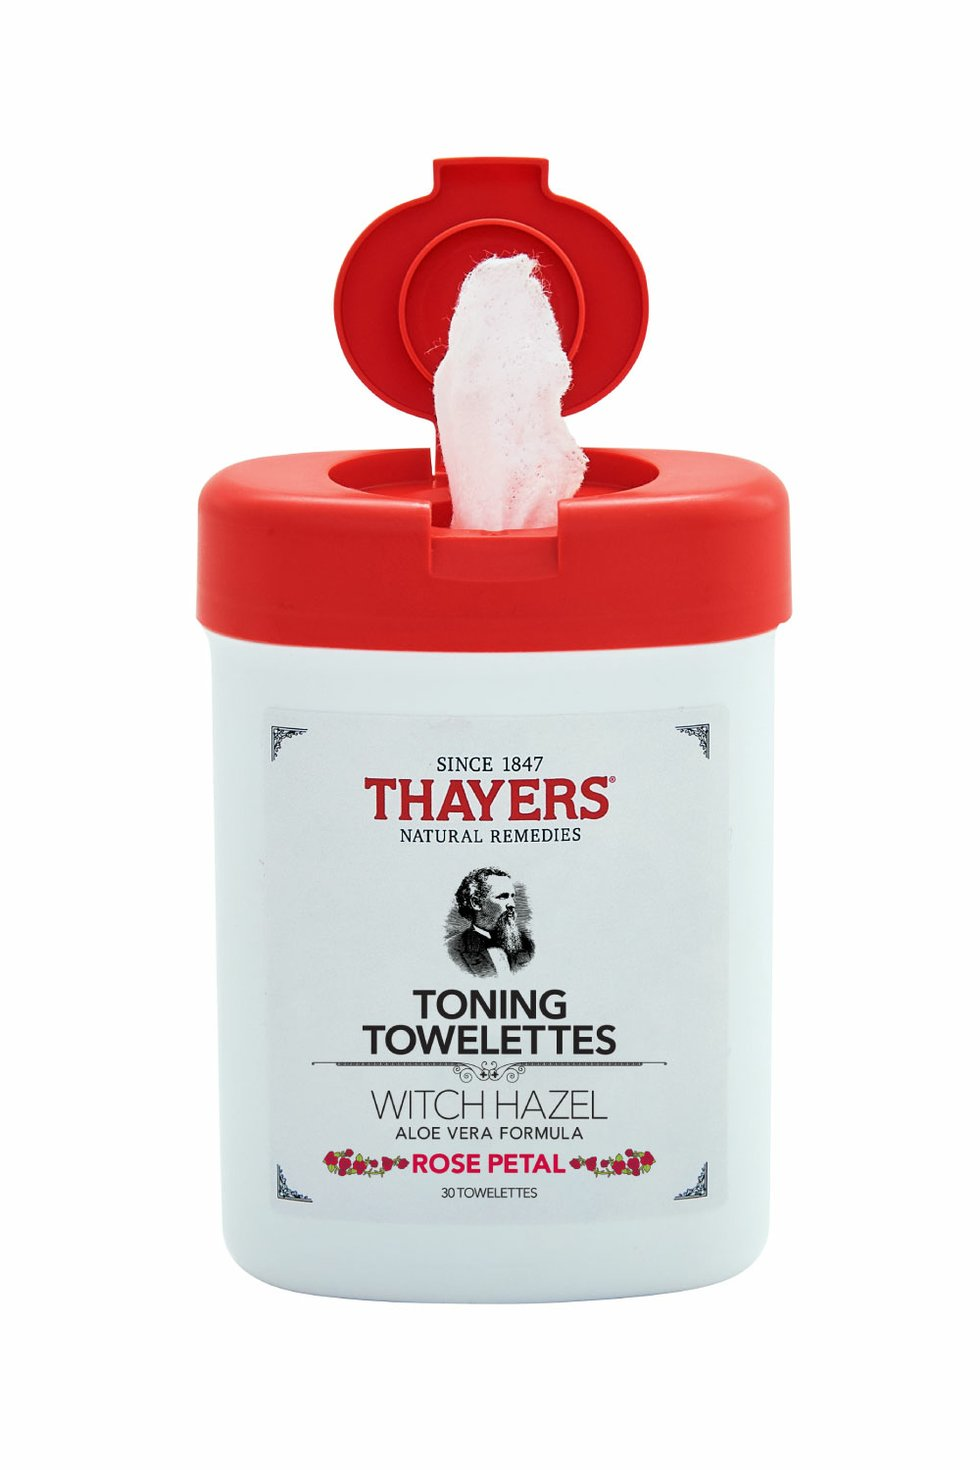 thayers towelettes